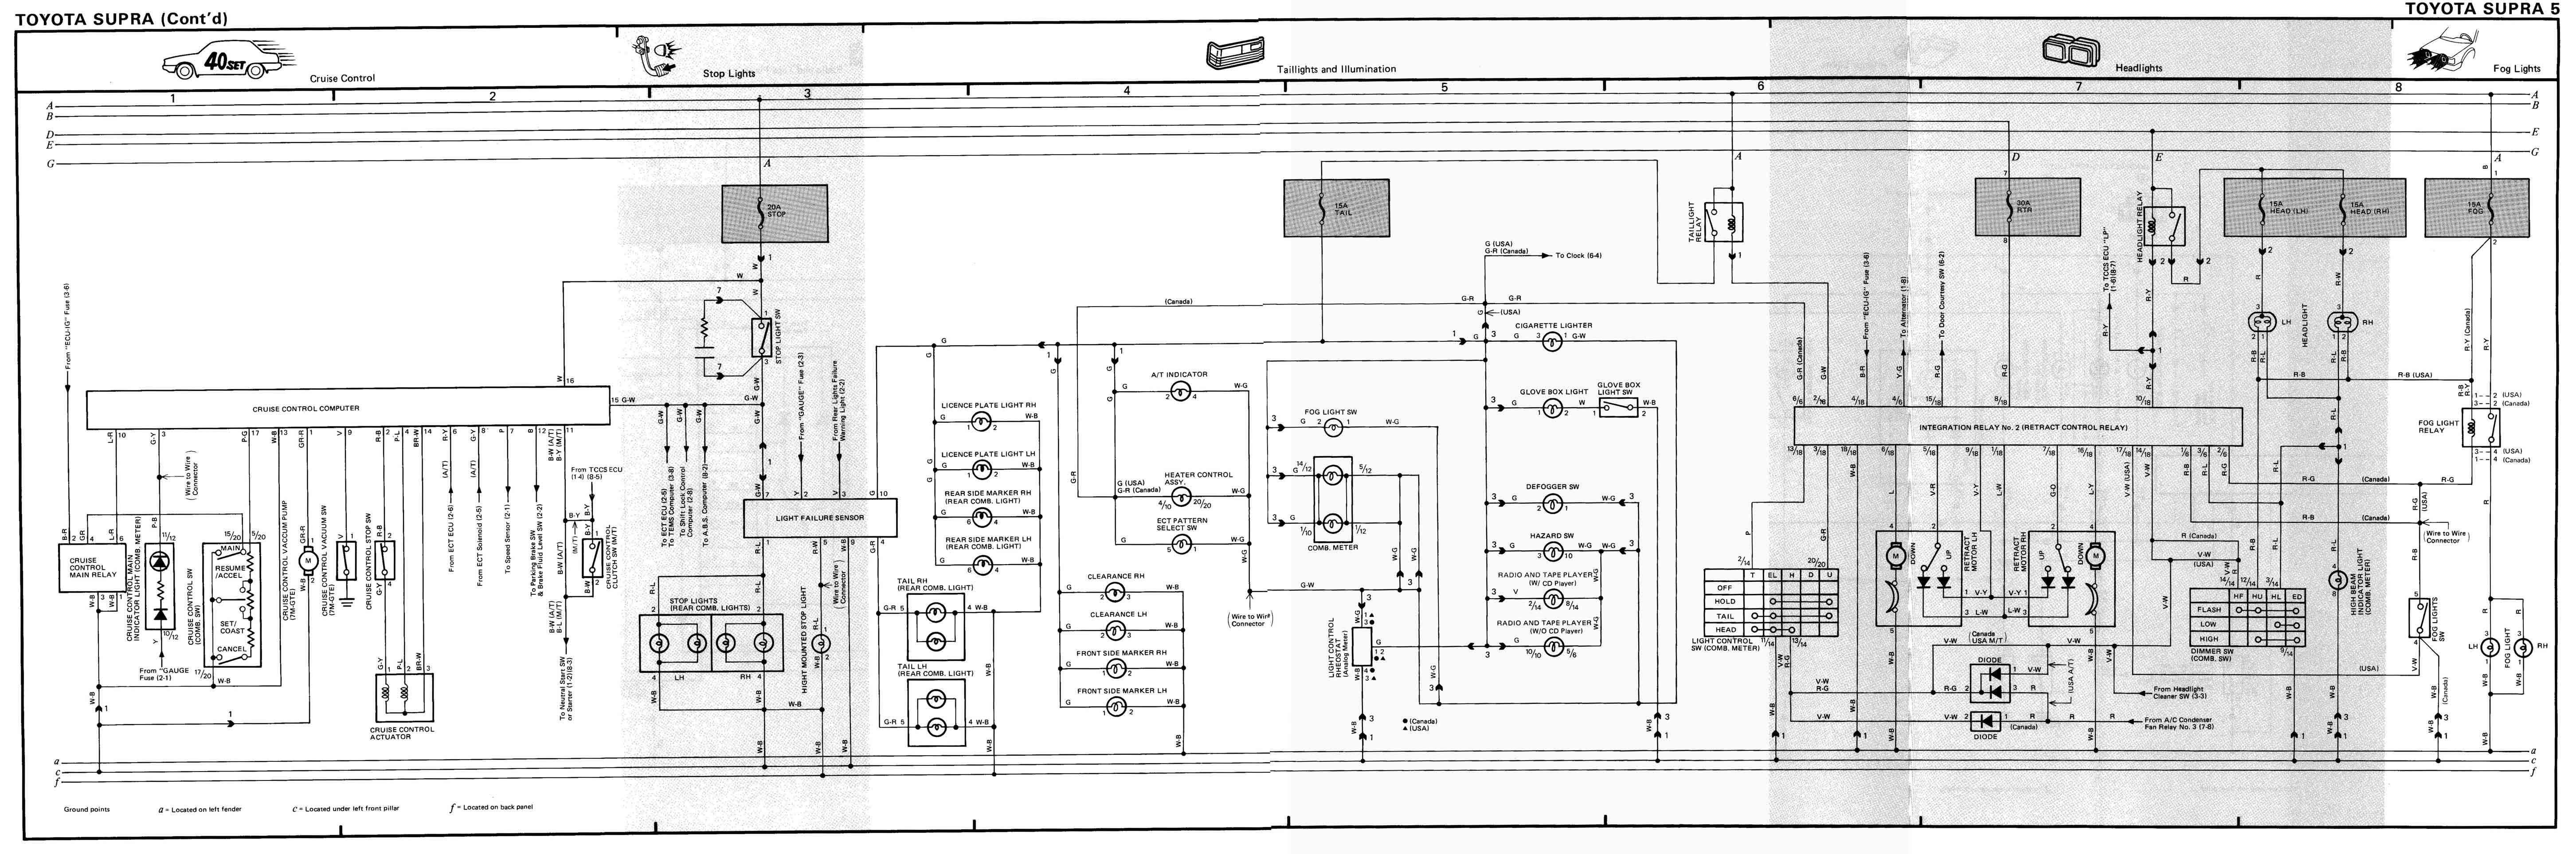 1989 toyota supra wiring diagram example electrical wiring diagram u2022 rh olkha co 1989 toyota supra radio wiring diagram 1989 toyota camry radio wiring diagram